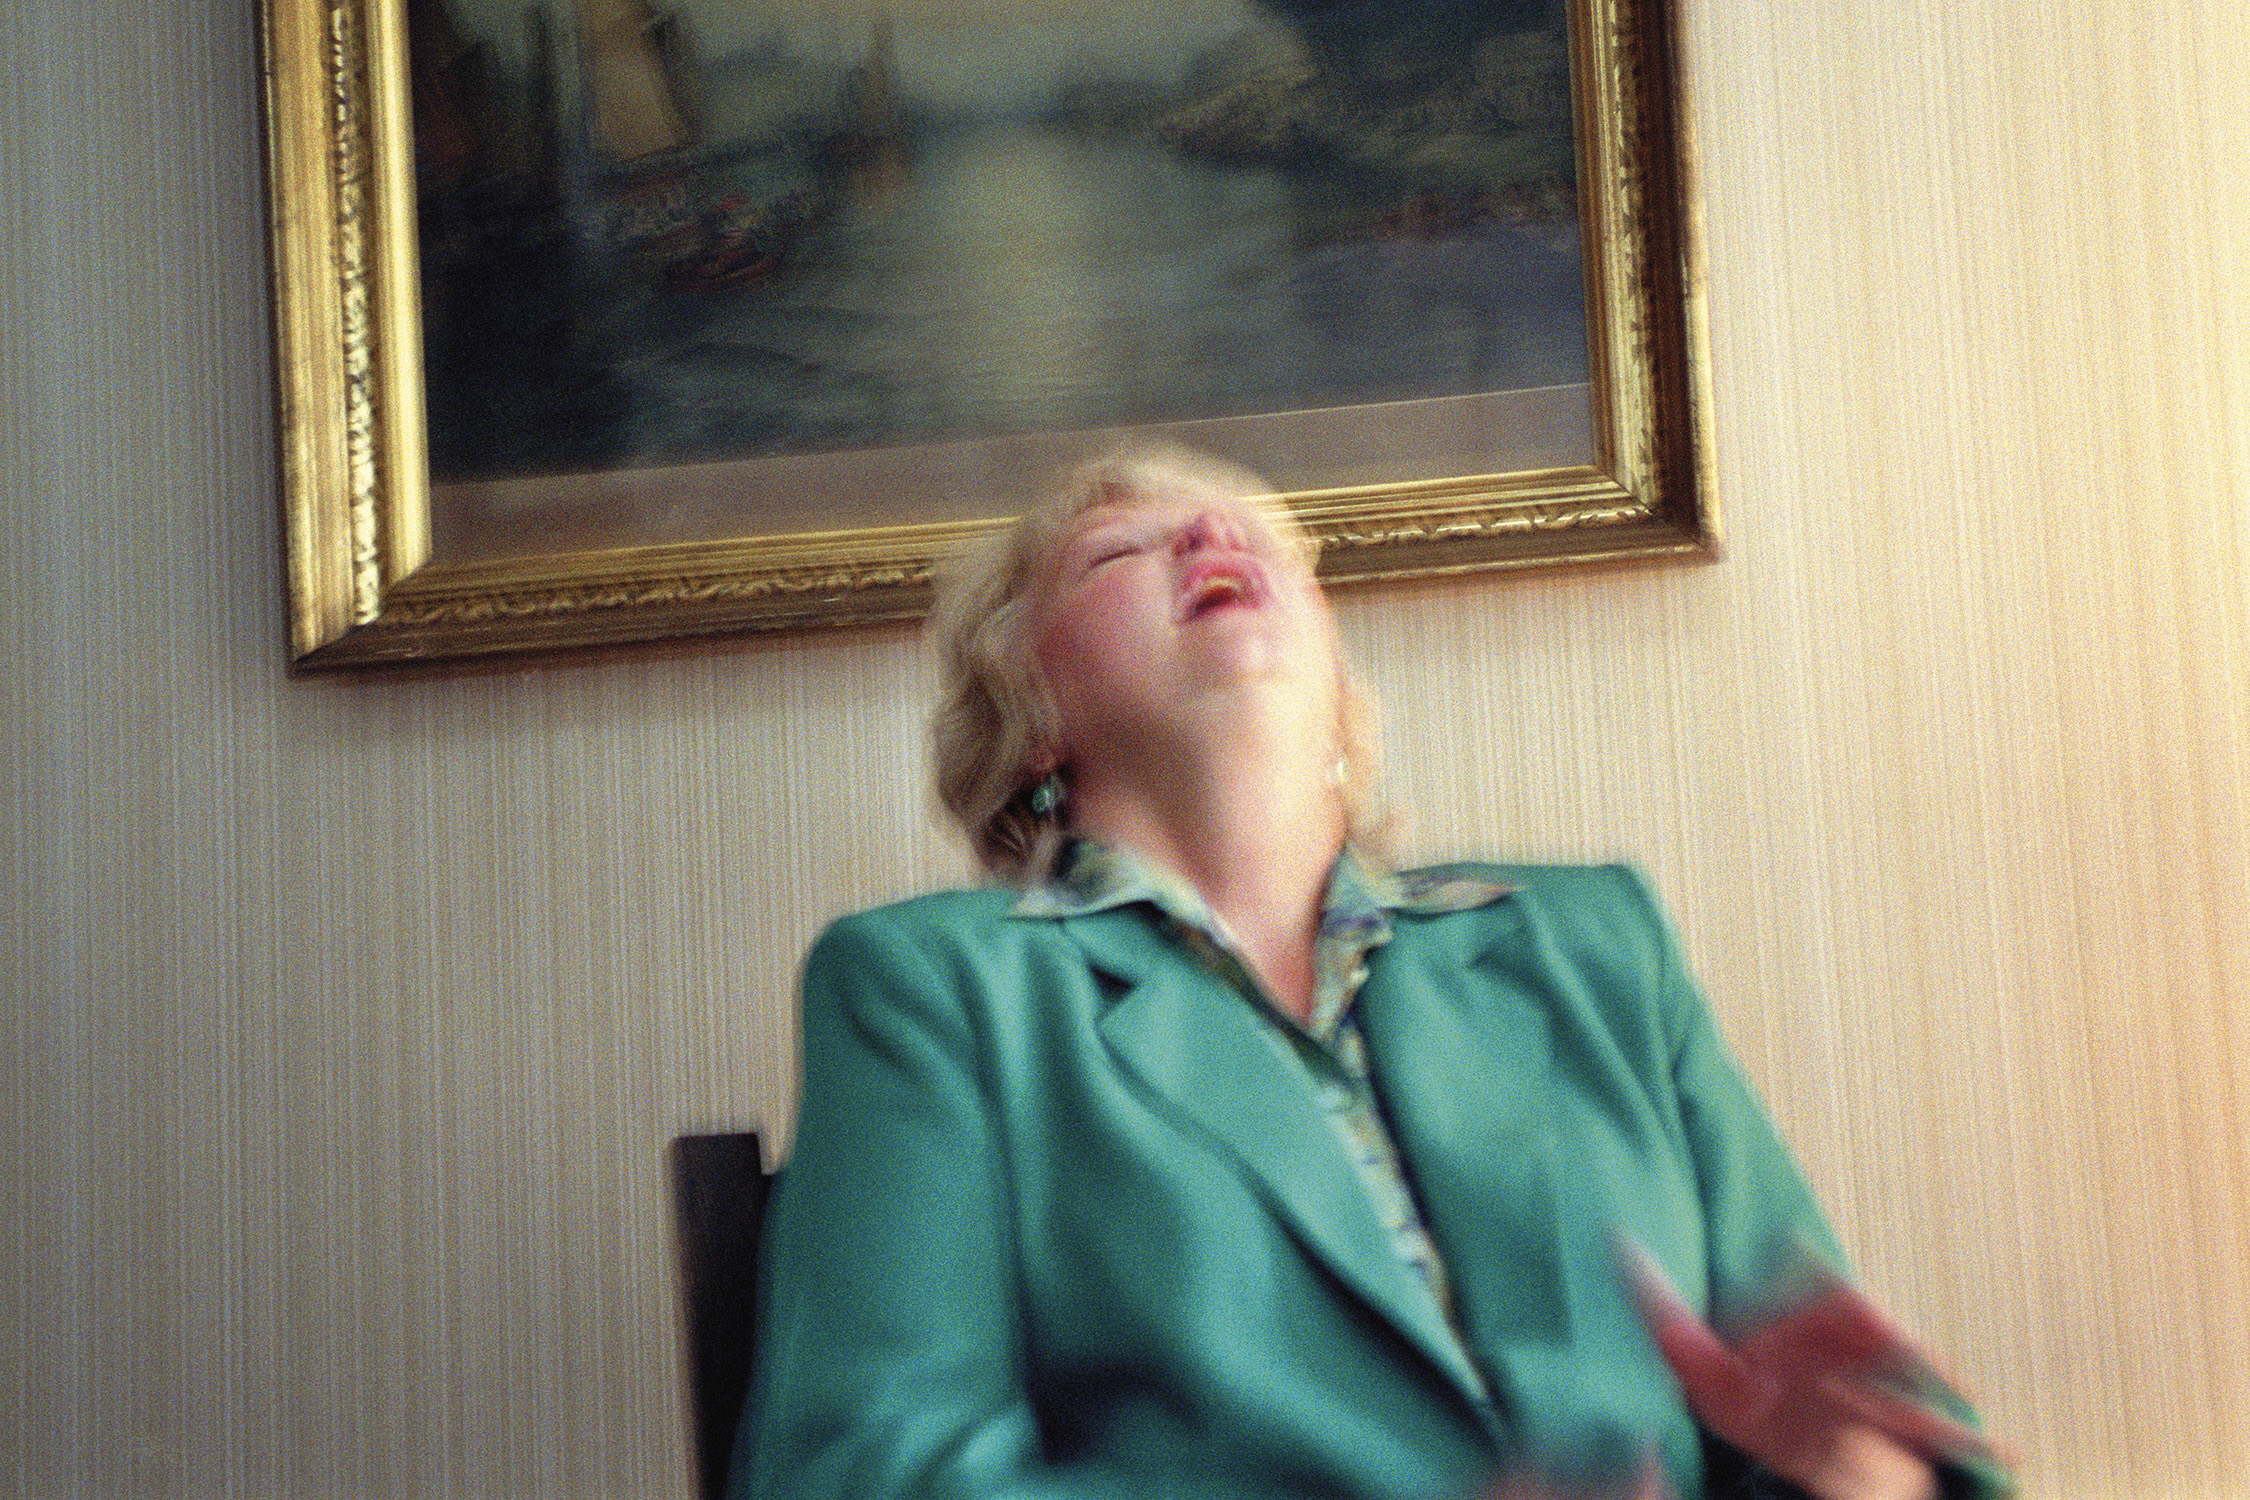 Gretchen Clark laughs as her deceased brother Chapman interrupts a reading to tell her a joke, Lily Dale, New York, 2001. From Séance by Shannon Taggart